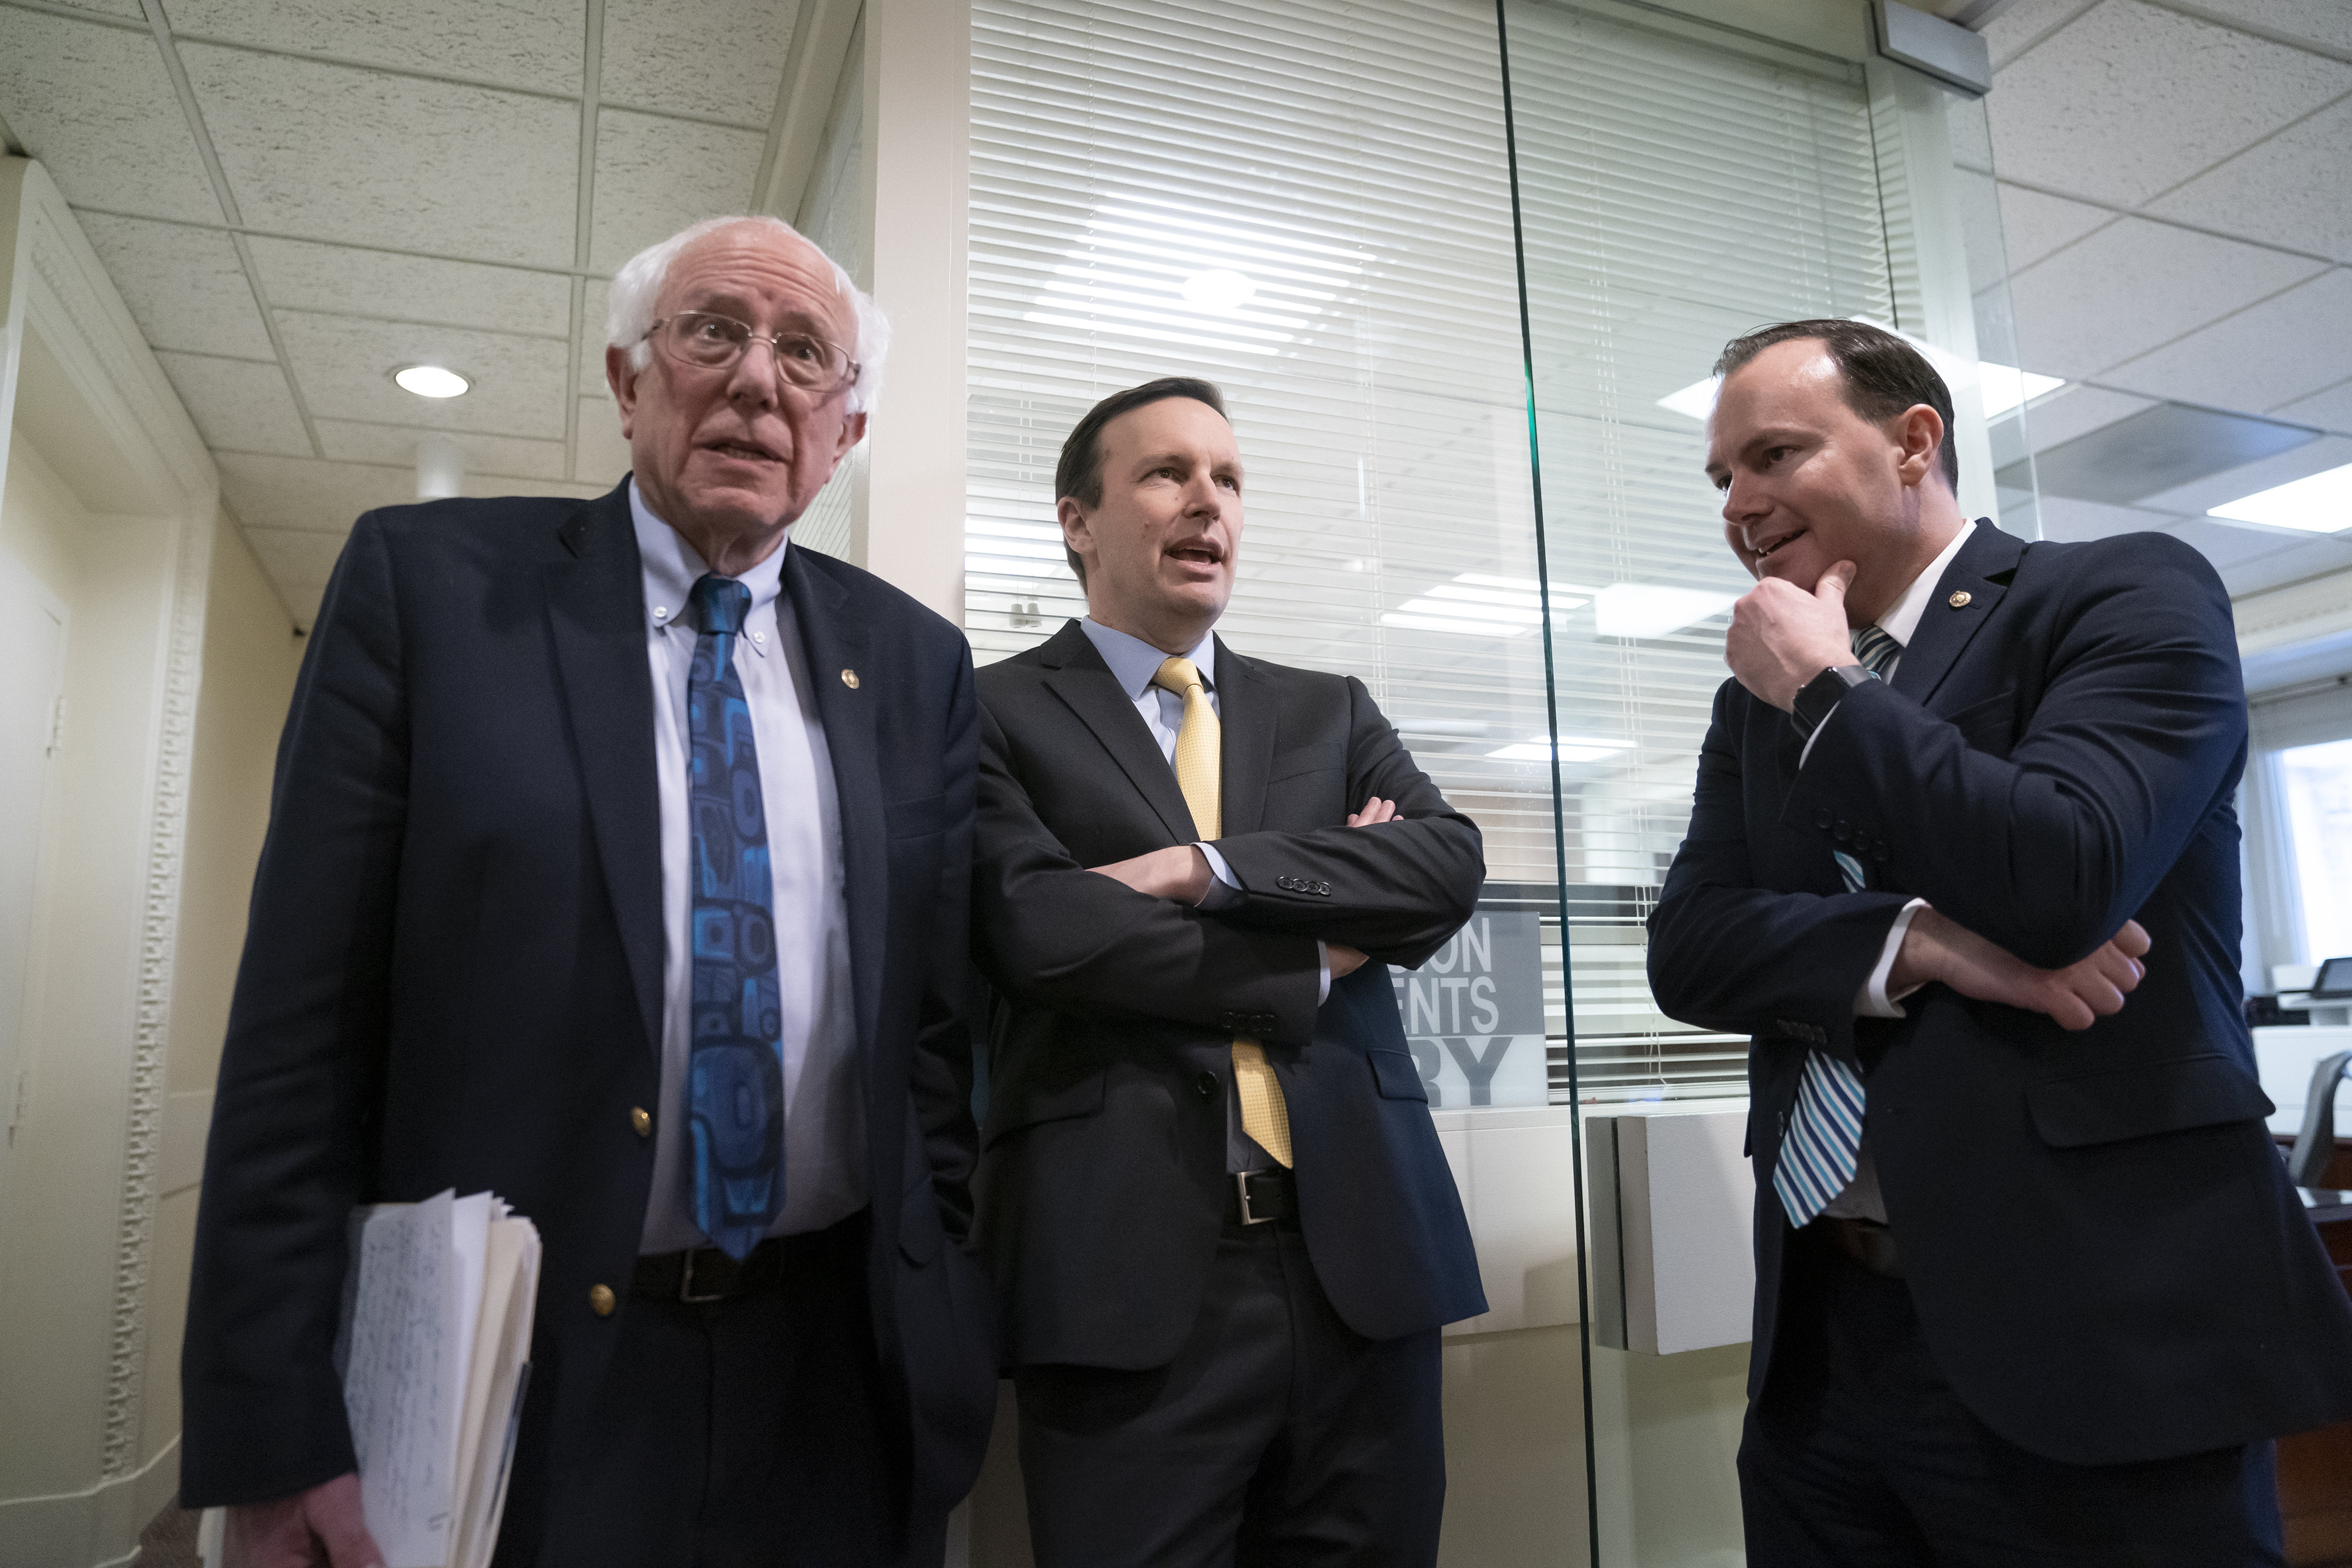 Democratic Senator Bernie Sanders, Democratic Senator Chris Murphy, and Republican Senator Mike Lee meet before holding a news conference on the Senate vote on ending U.S. support for the Saudi-led coalition fighting in Yemen, at the Capitol in Washington, DC, March 13. (AP Photo/J. Scott Applewhite)